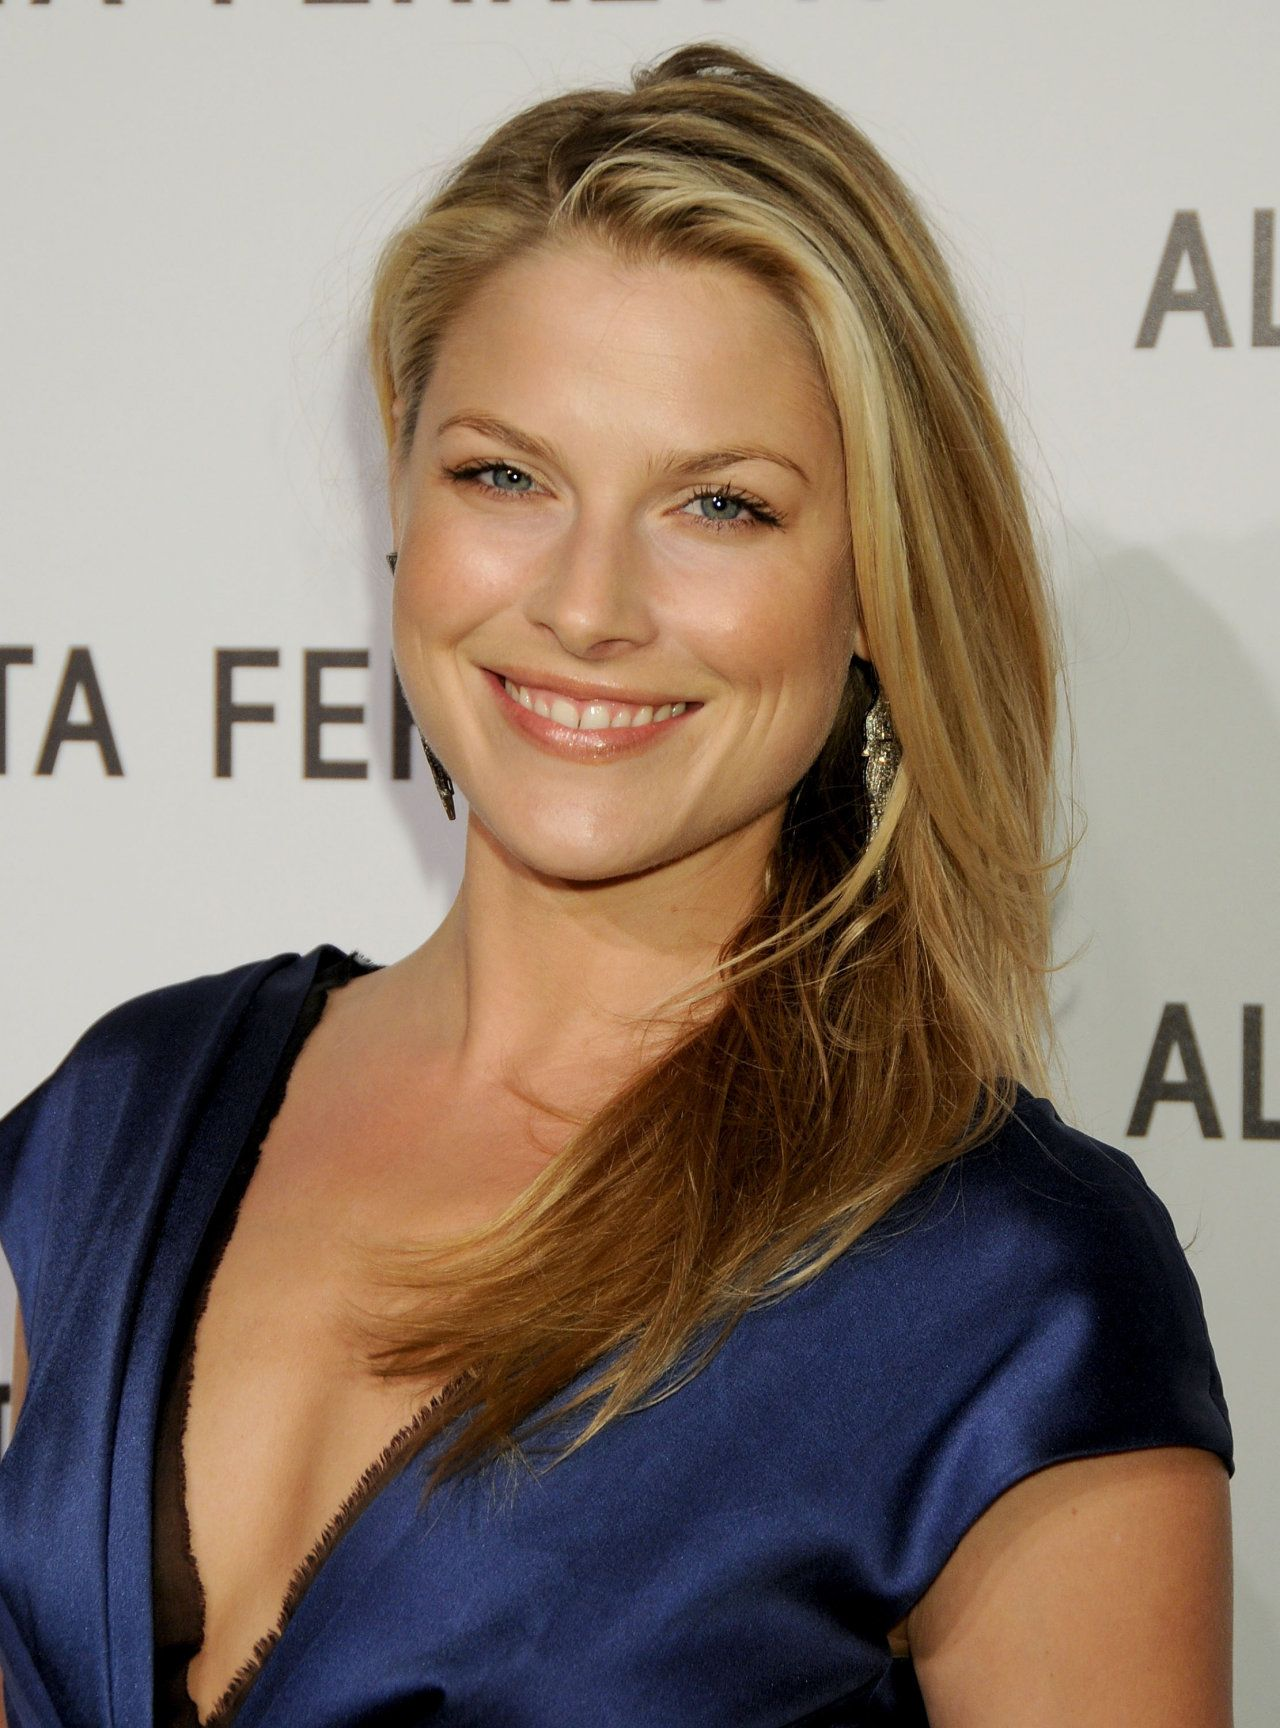 charming seductress ali larter  high-class lady the